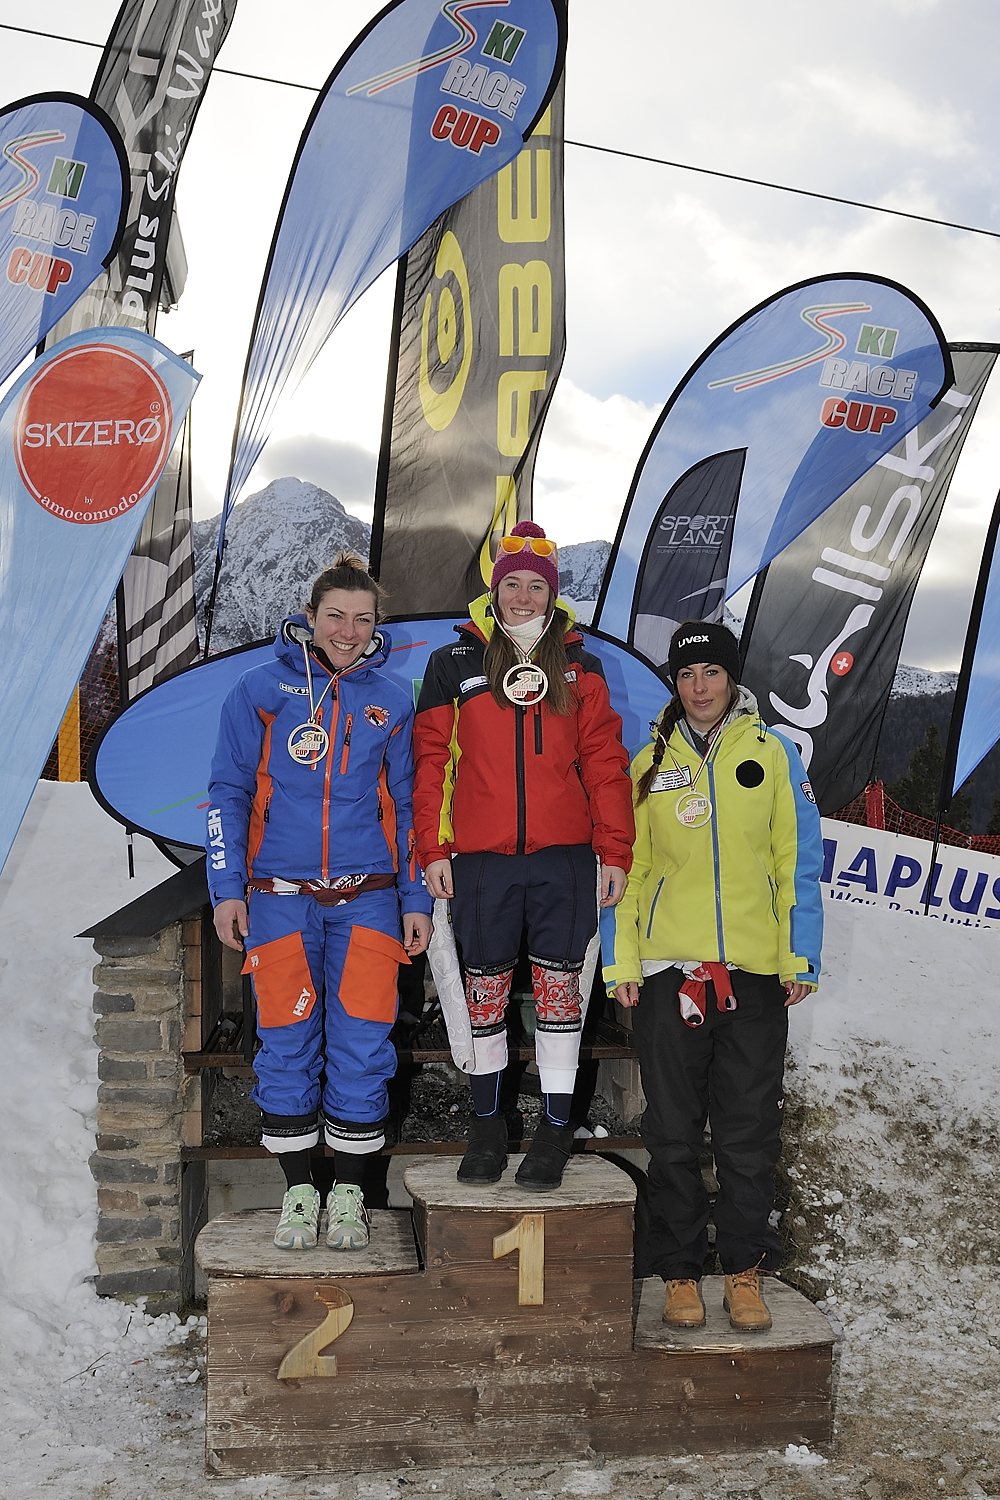 Podio Senior femminile ©Ski Race Cup